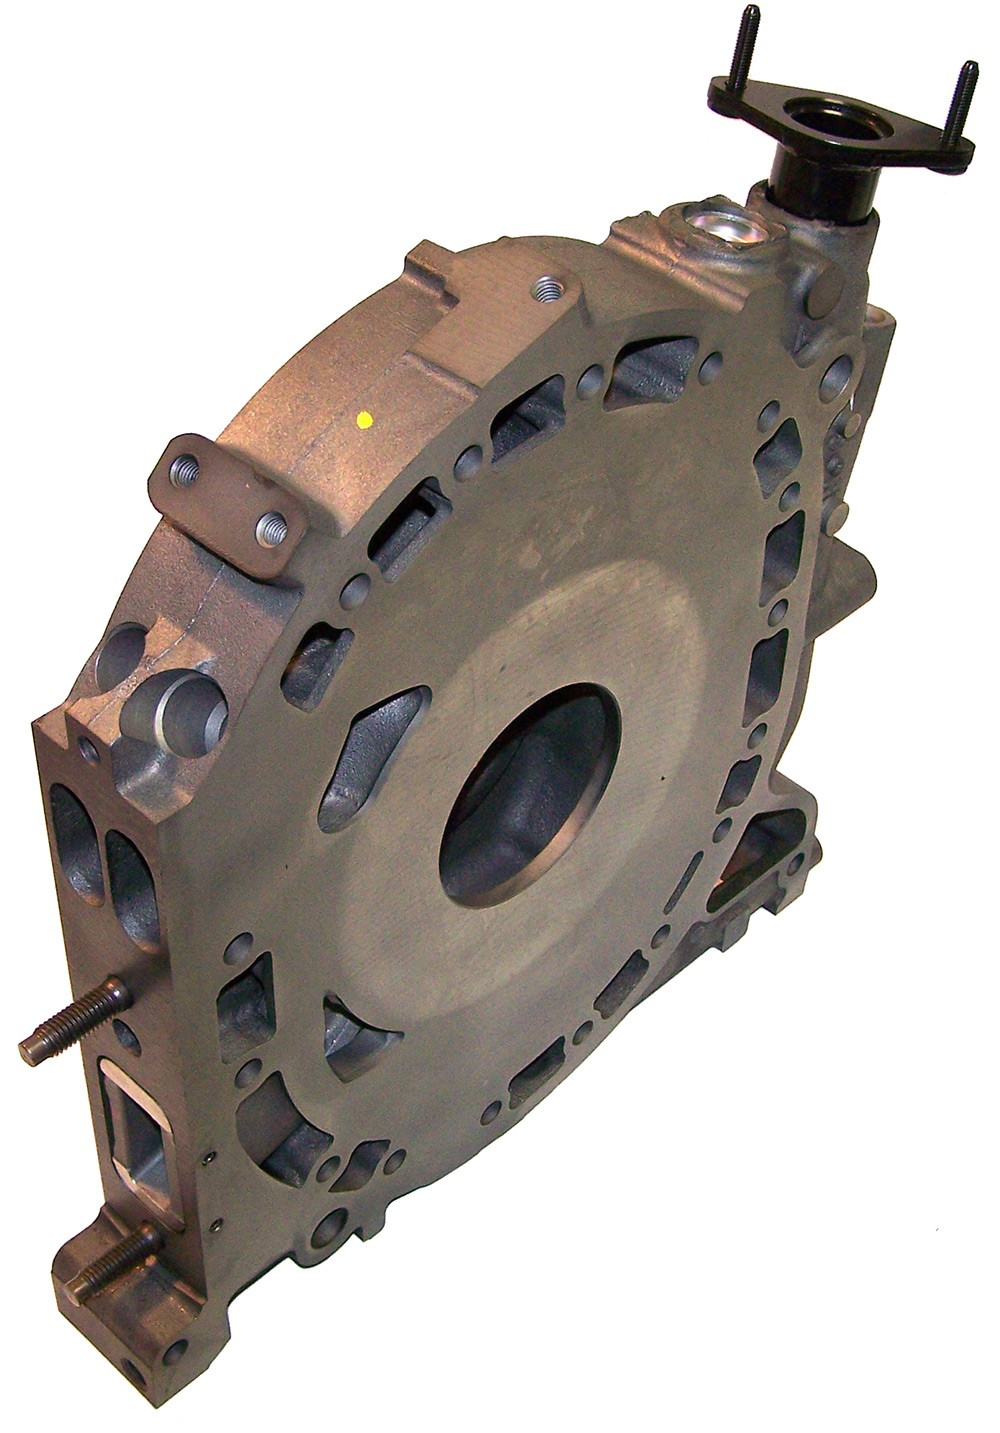 09-11 Rx8 Center Cast Iron (N3R1-10-D00A)